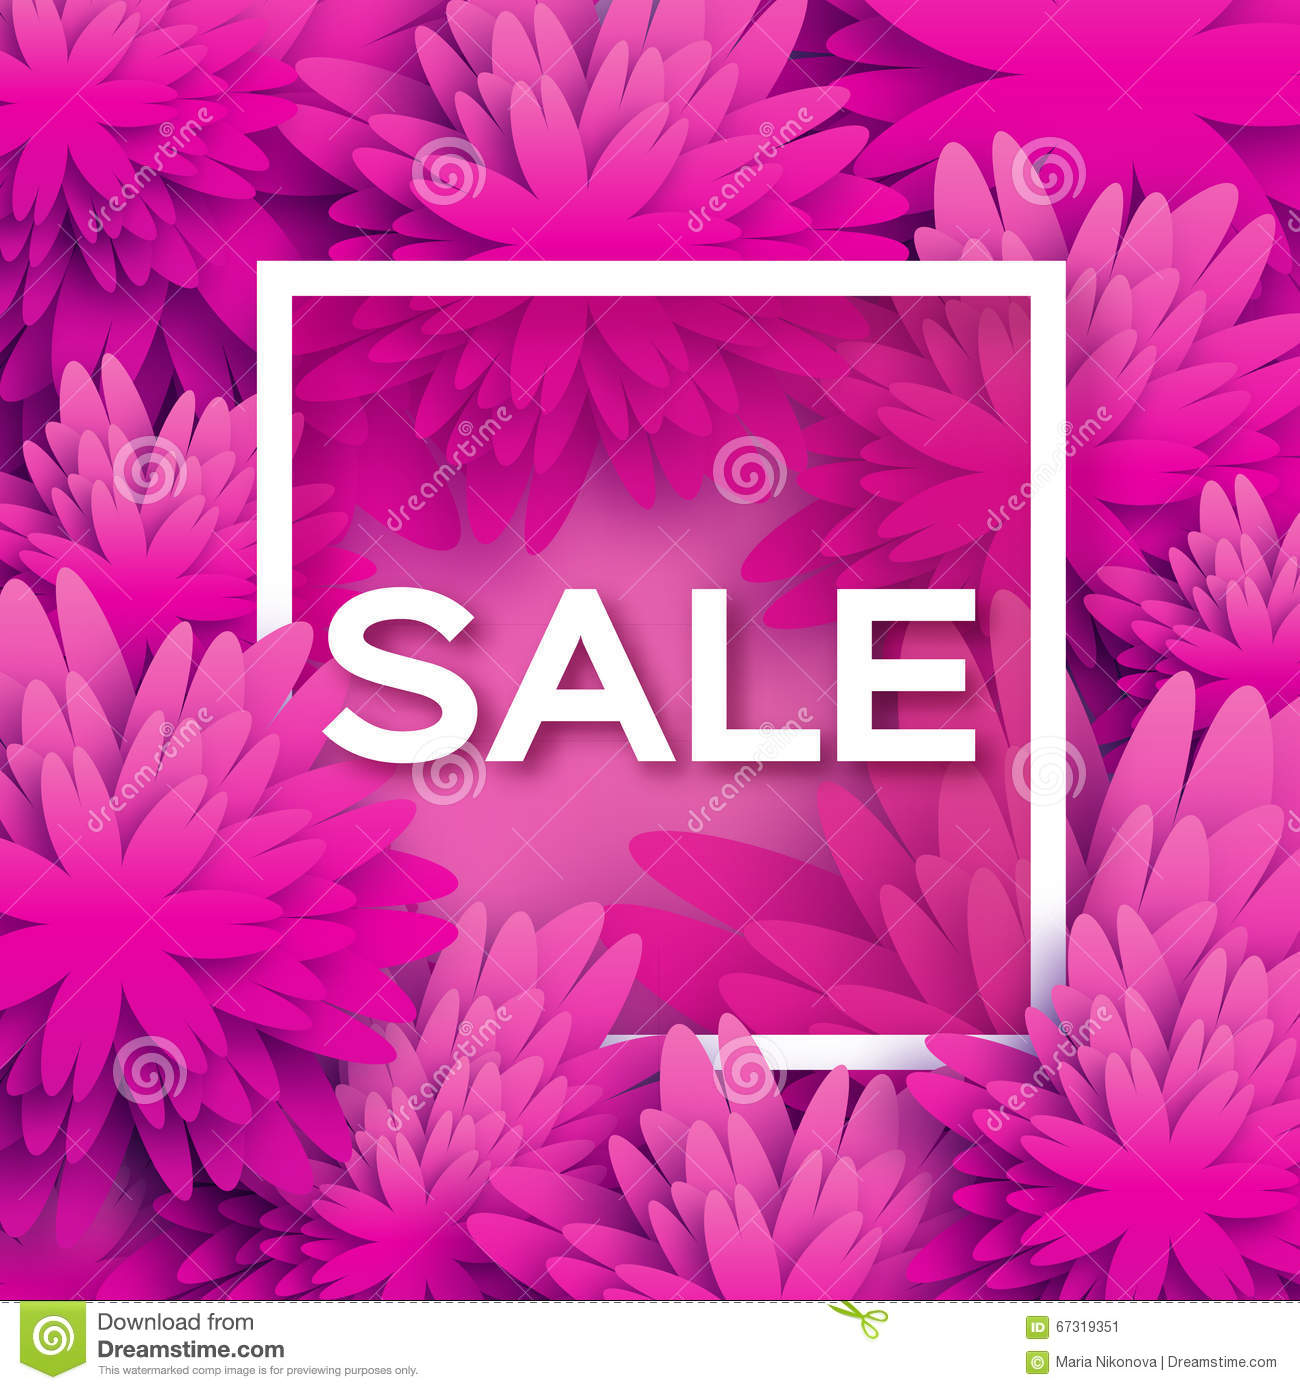 Abstract spring summer sale colorful banner for business stock download abstract spring summer sale colorful banner for business stock illustration illustration of happy mightylinksfo